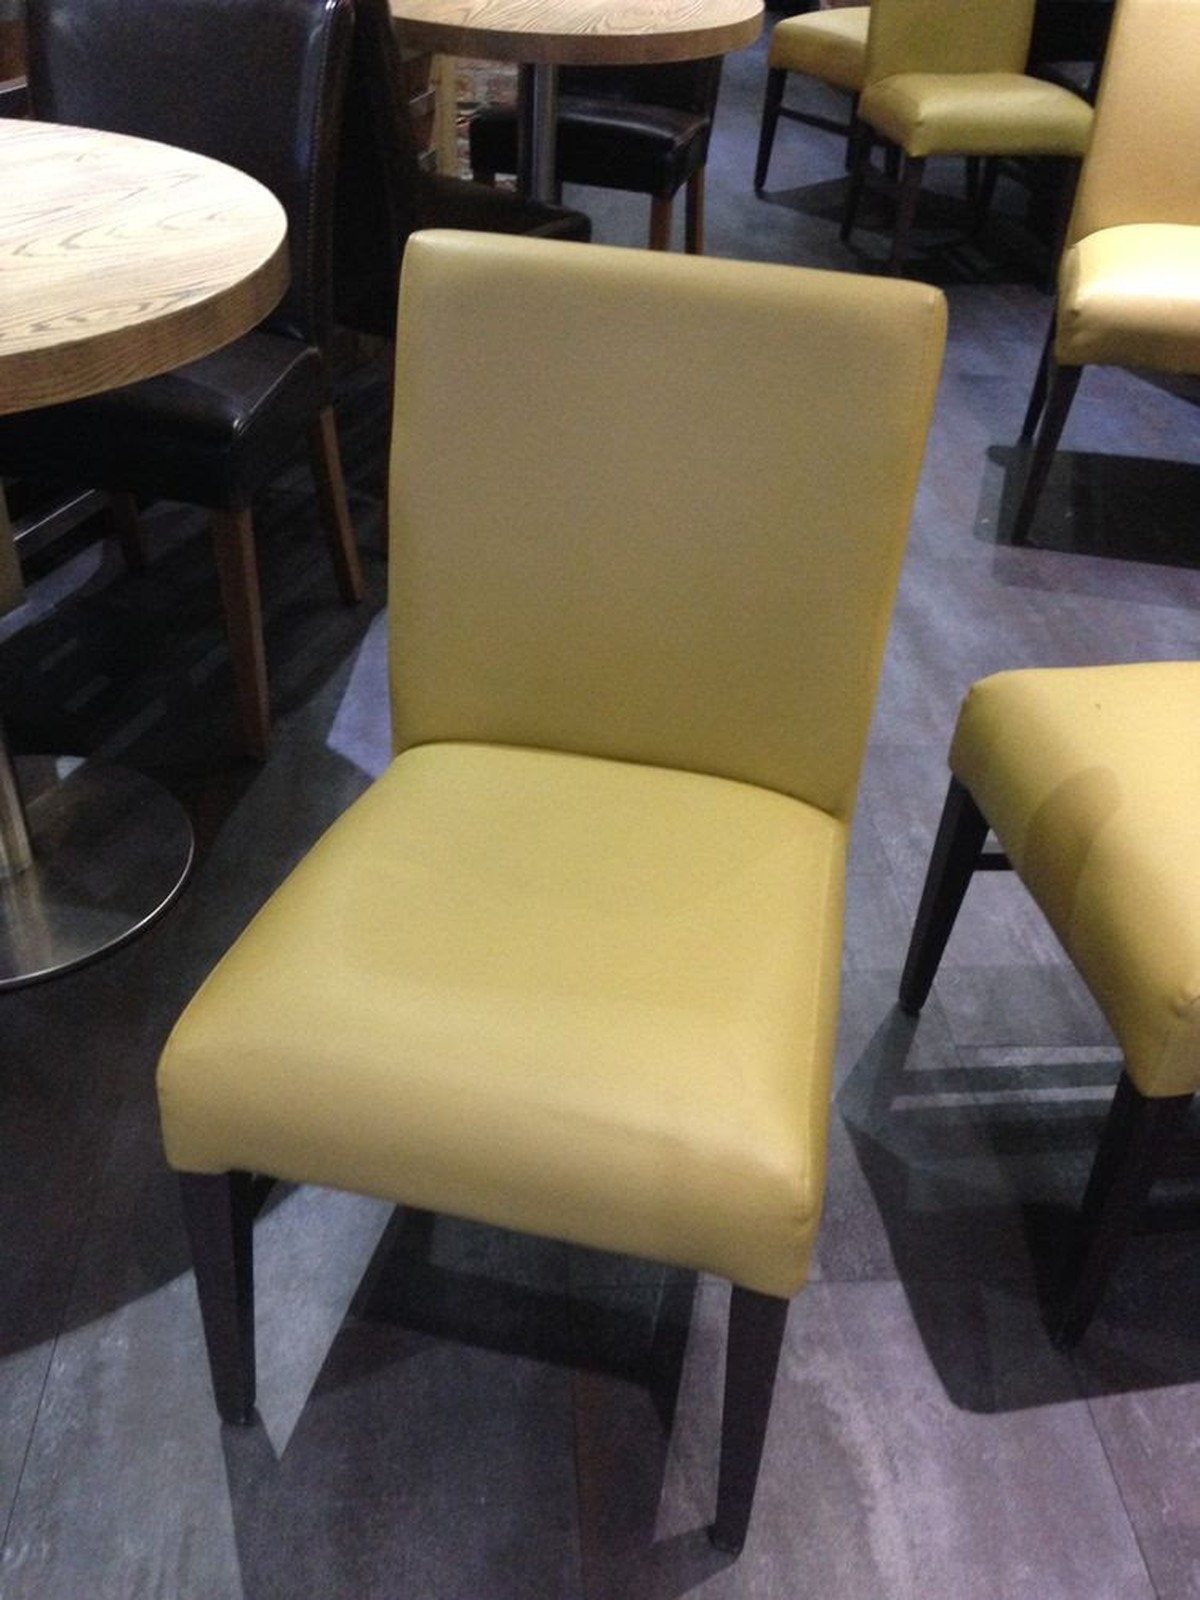 Secondhand hotel furniture dining chairs leather